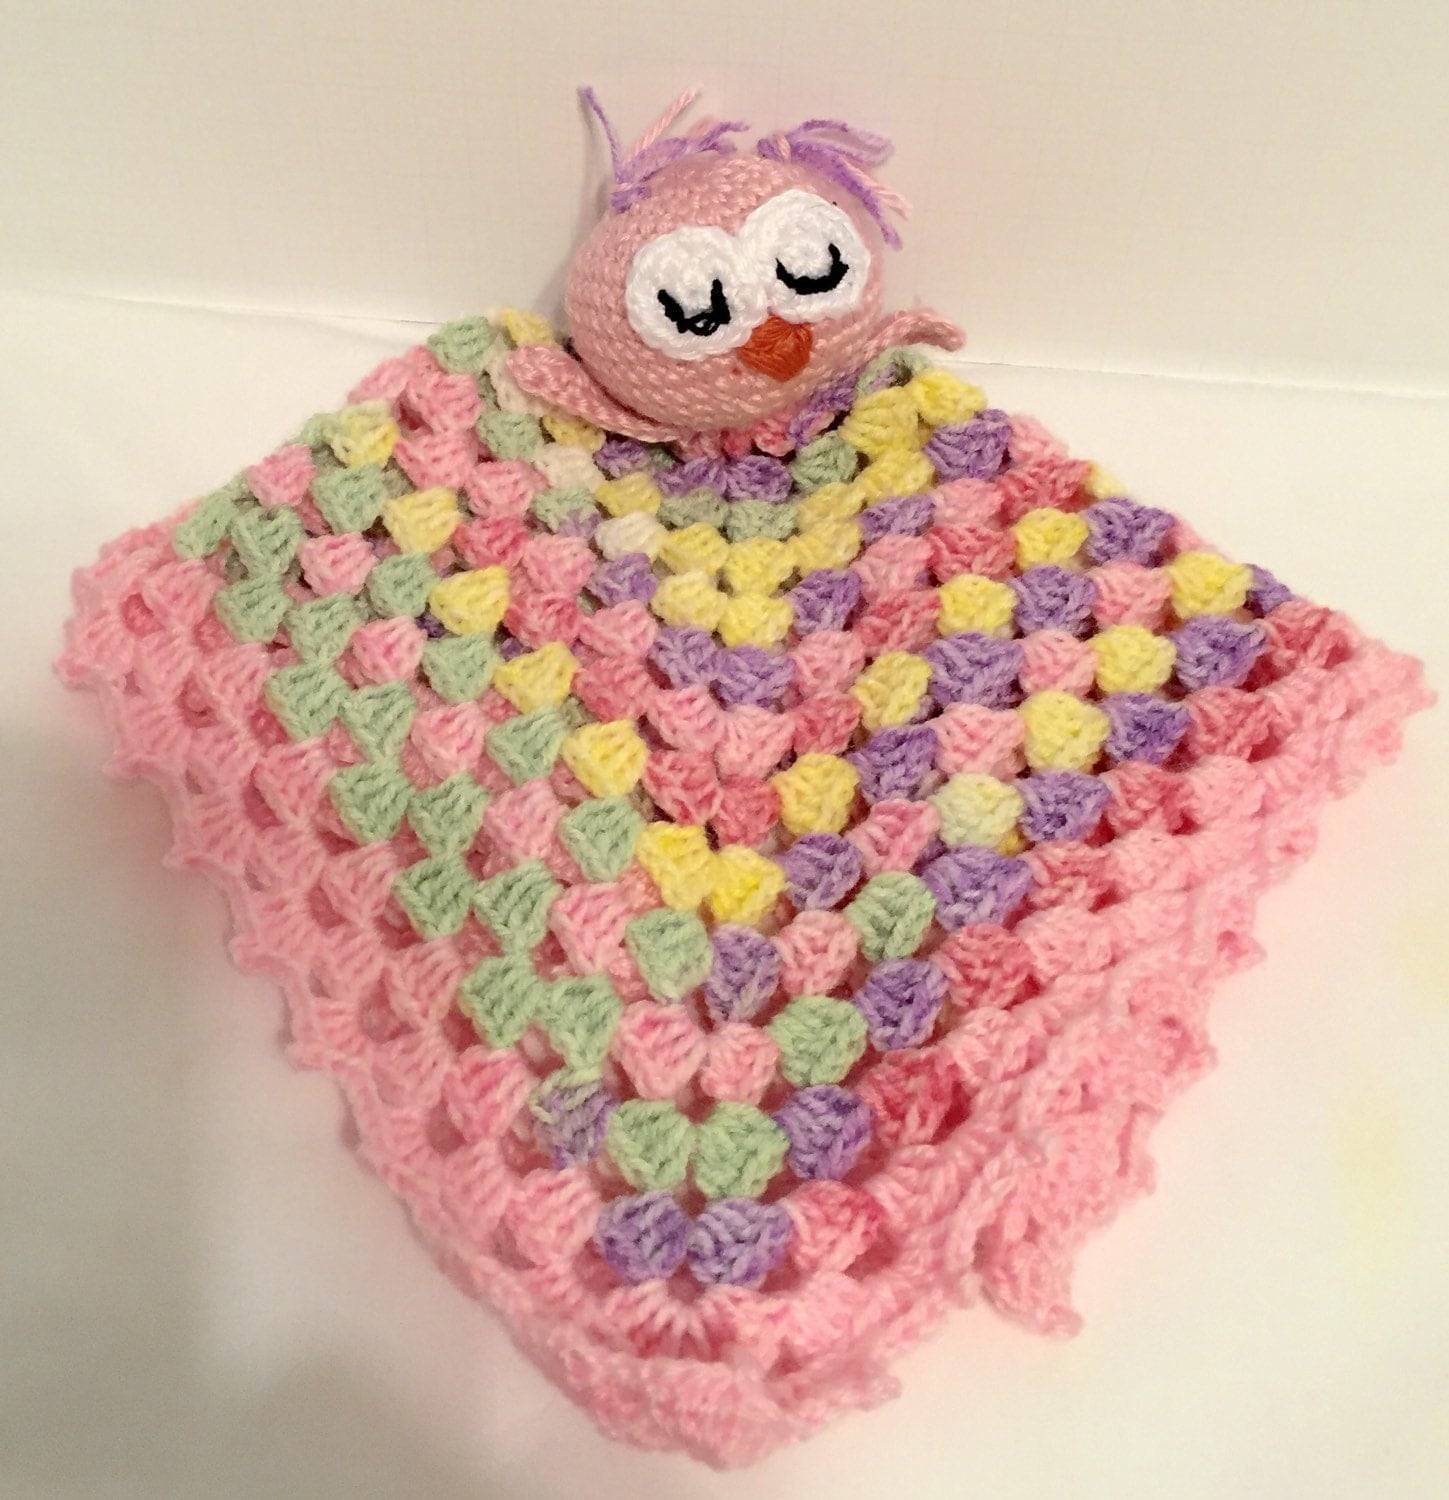 Crochet Owl Blanket : Crochet Owl Security Blanket by TooTinyTooCute on Etsy